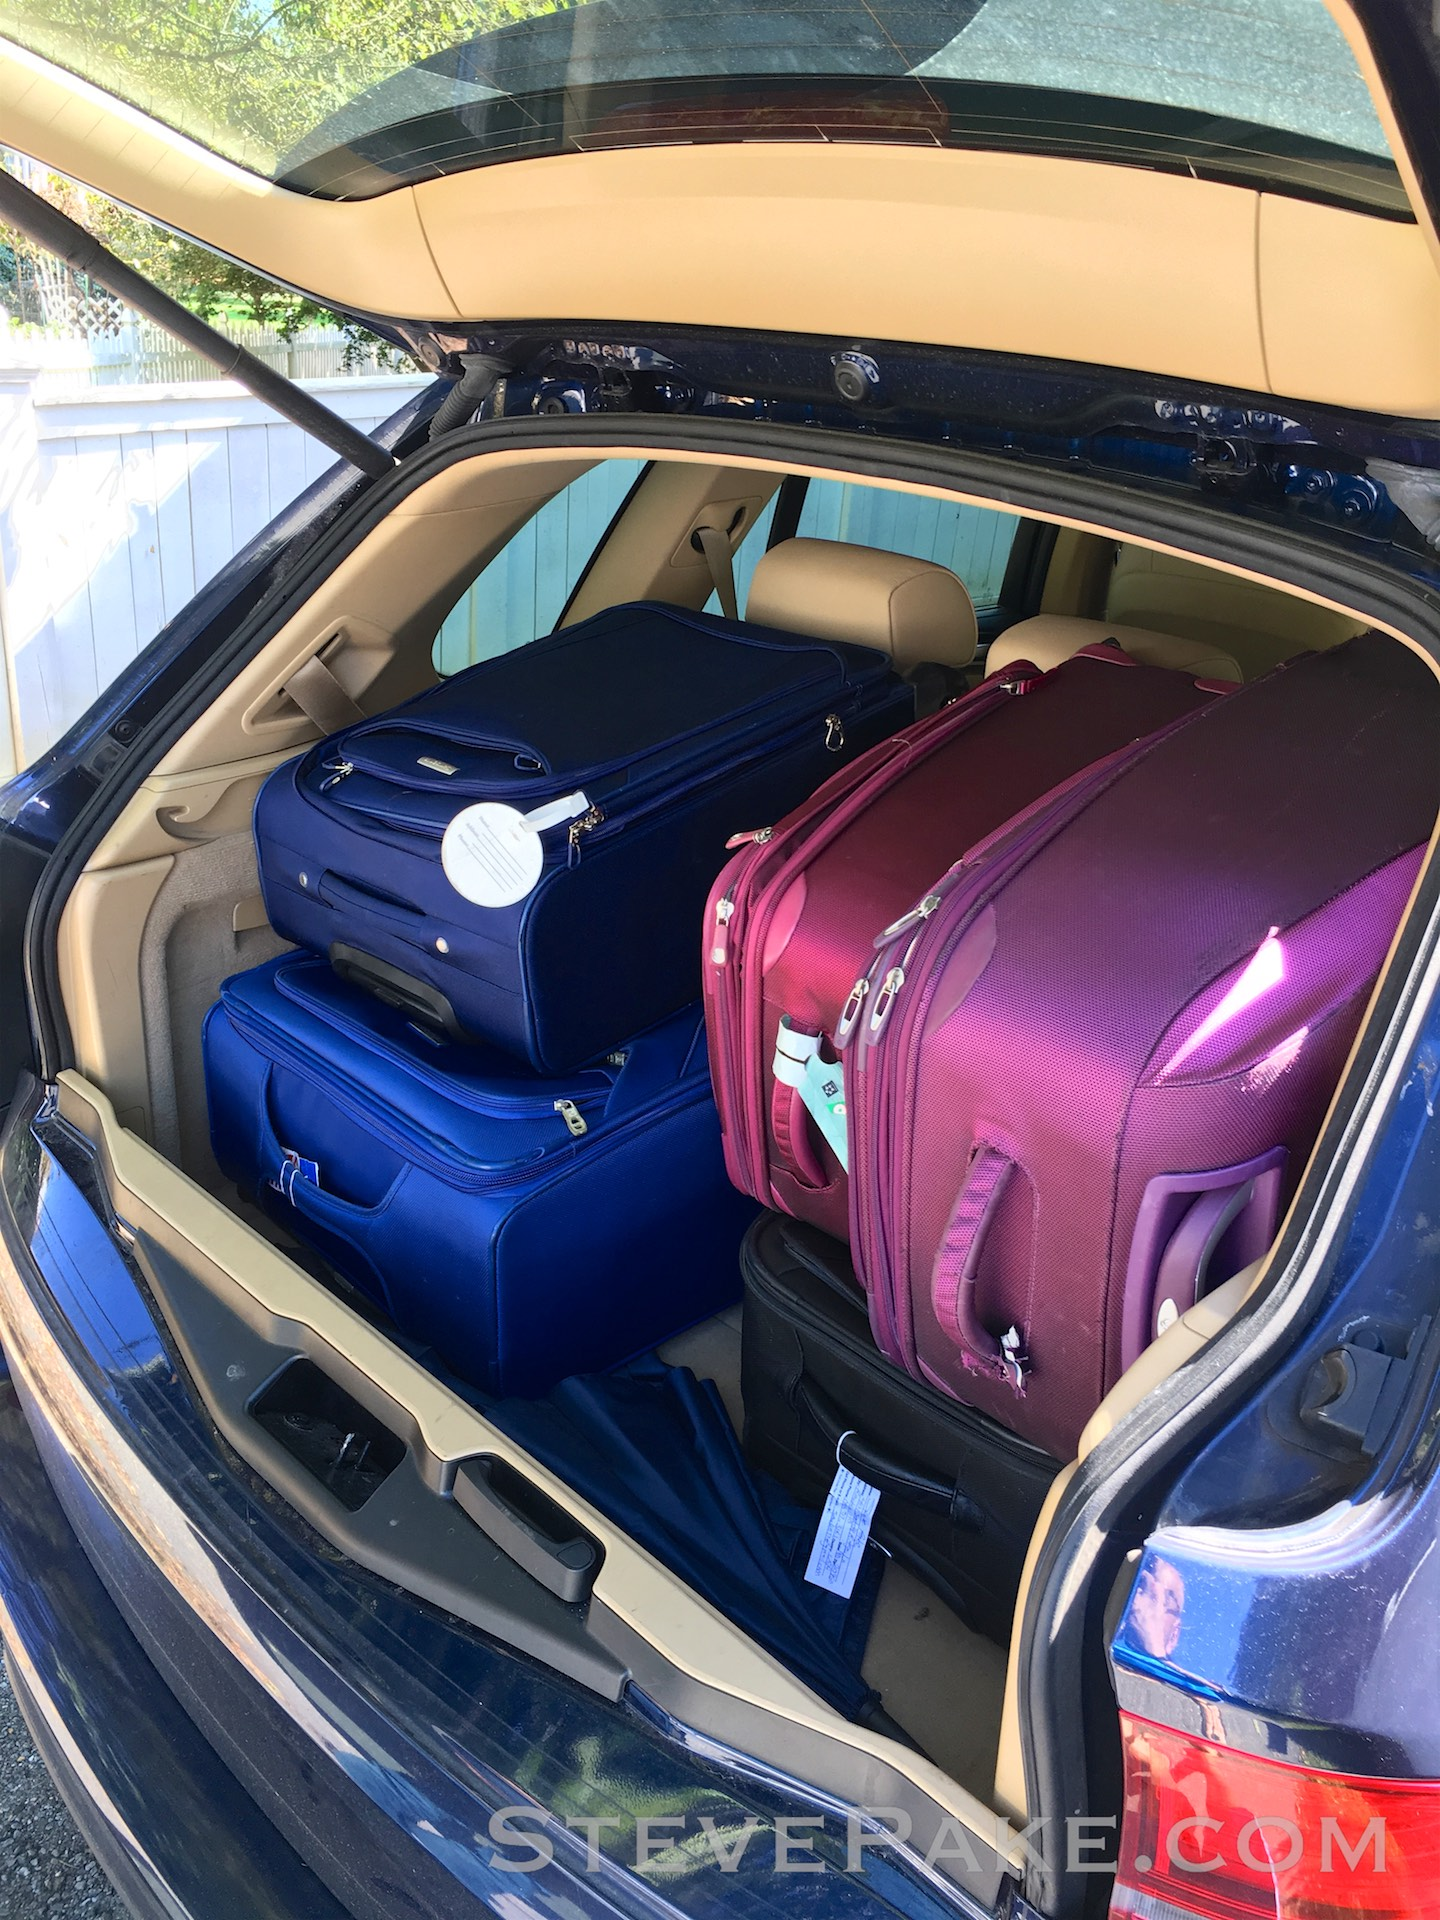 Our 2012 BMW X5 with the same five international trip rigid bags, with room to spare for all the extras!